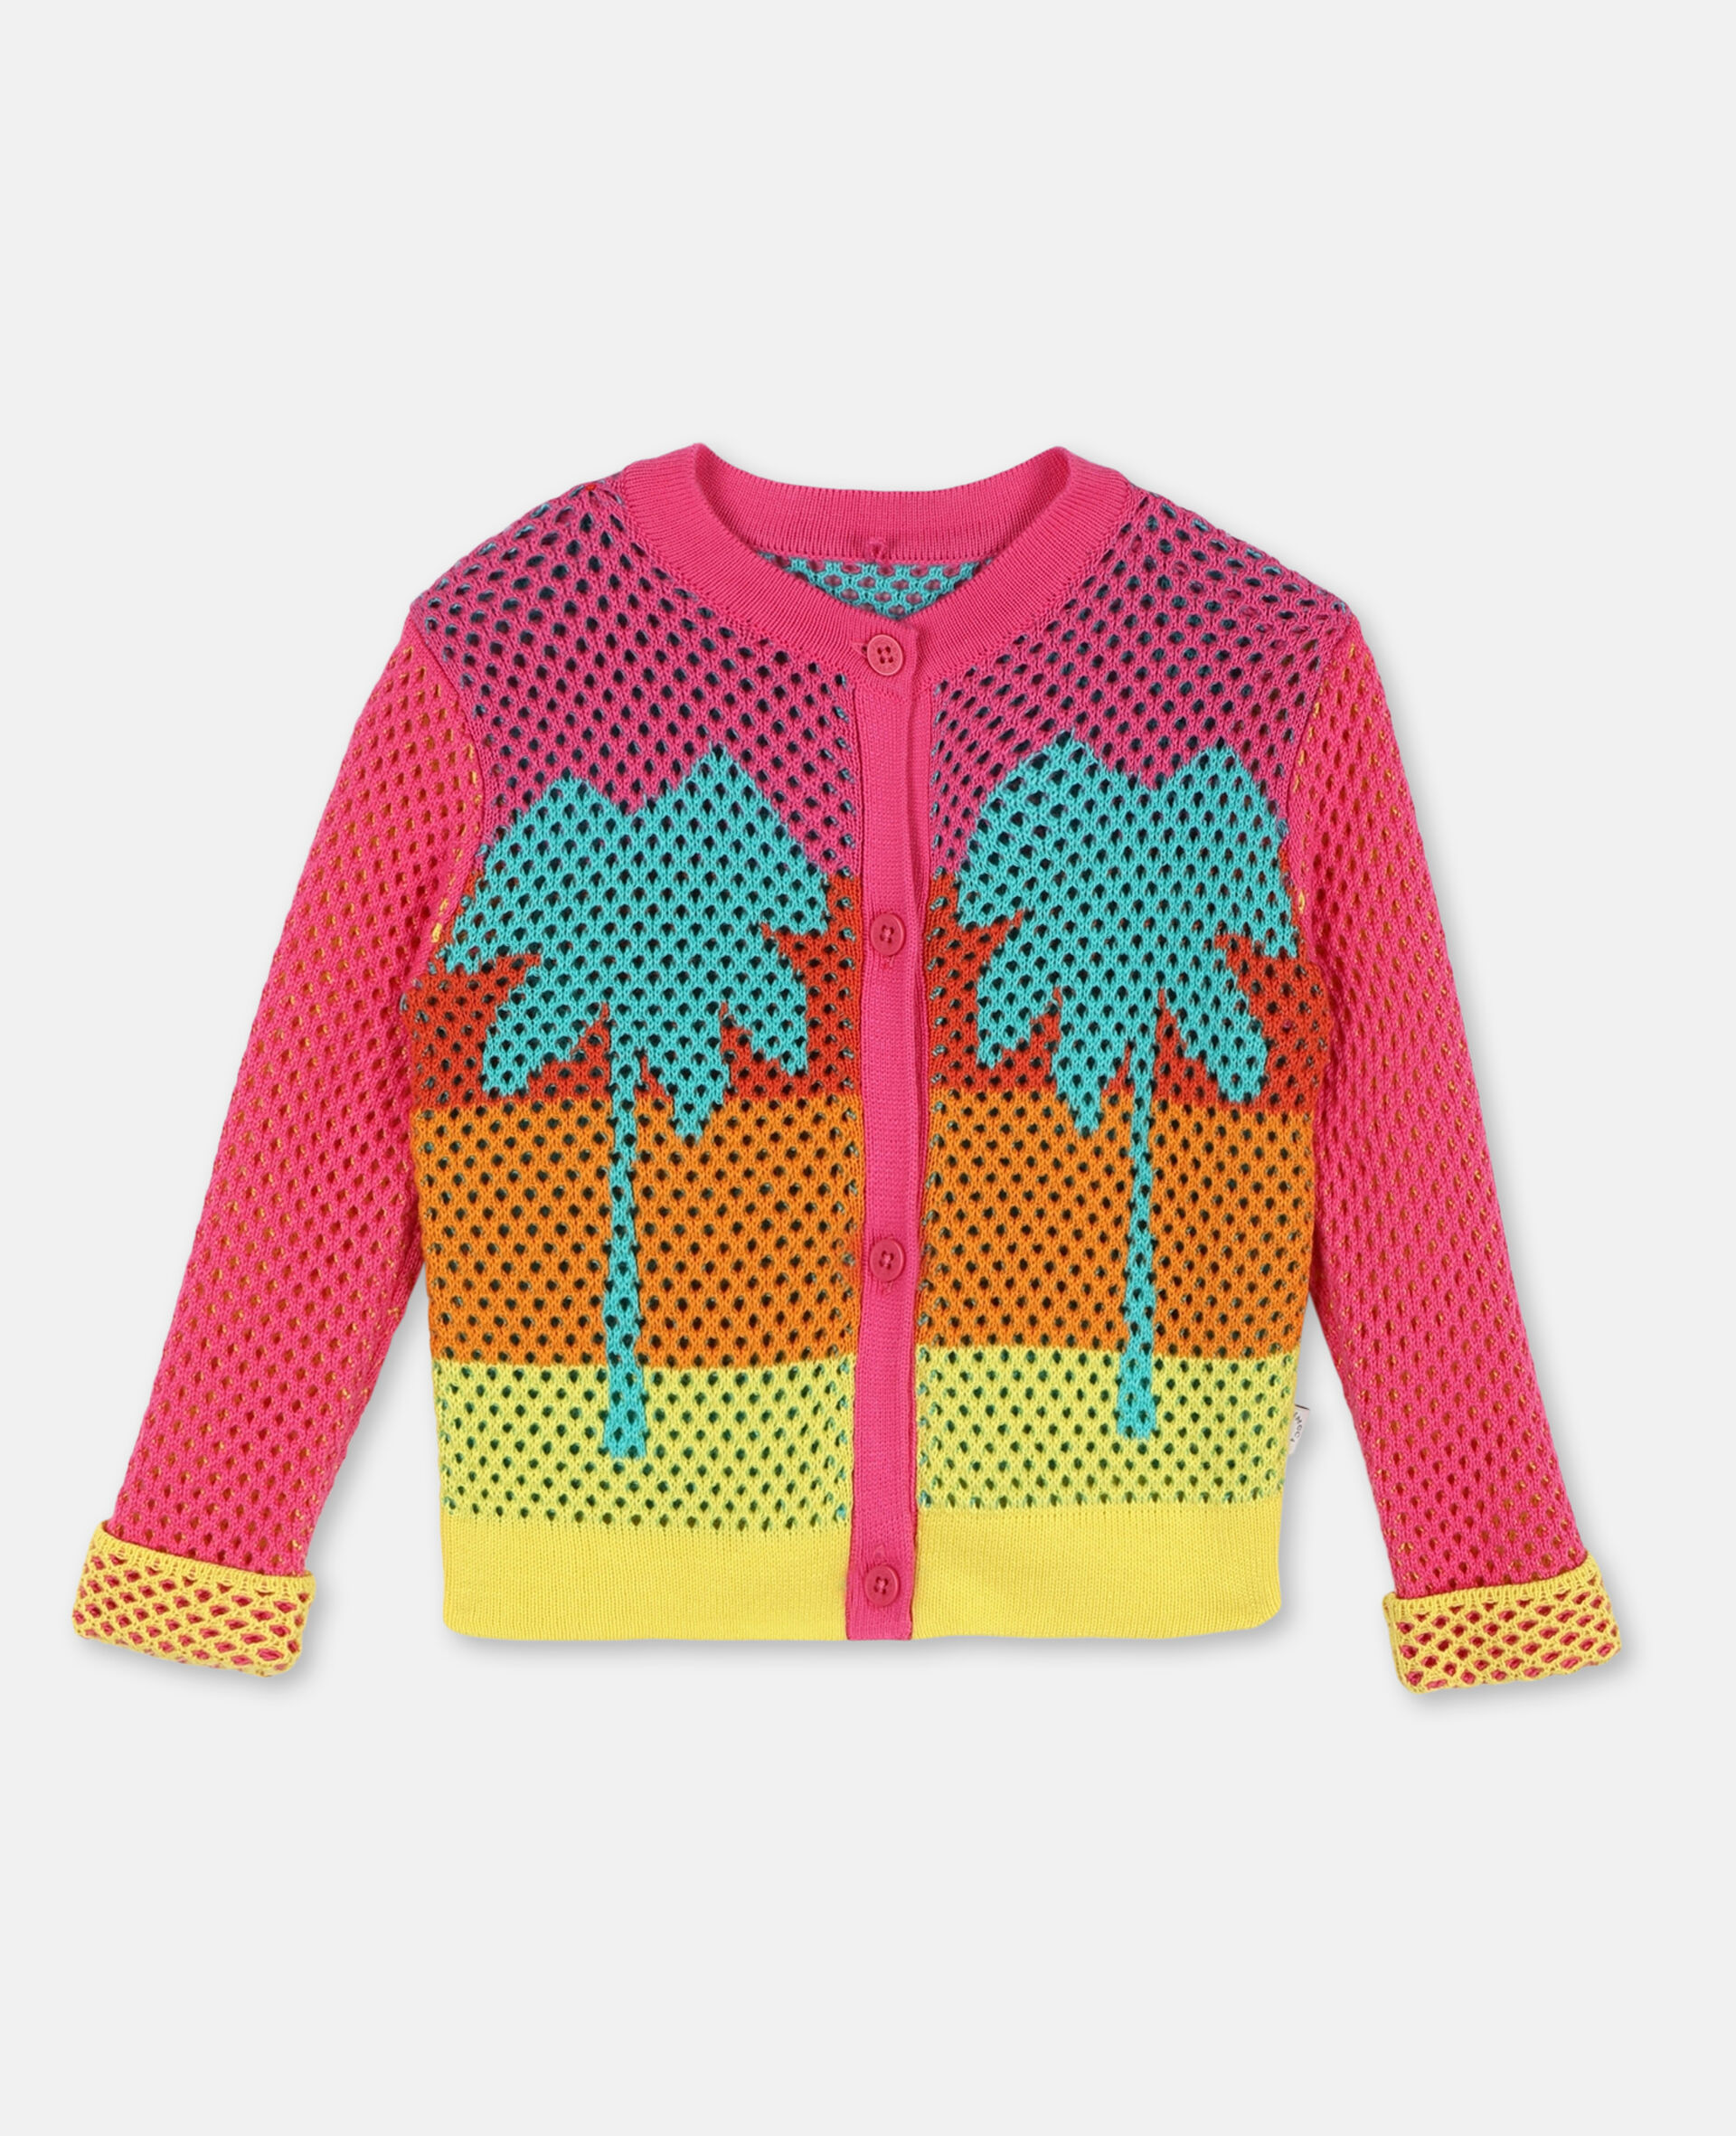 Intarsia Mesh Knit Cotton Cardigan-Multicolour-large